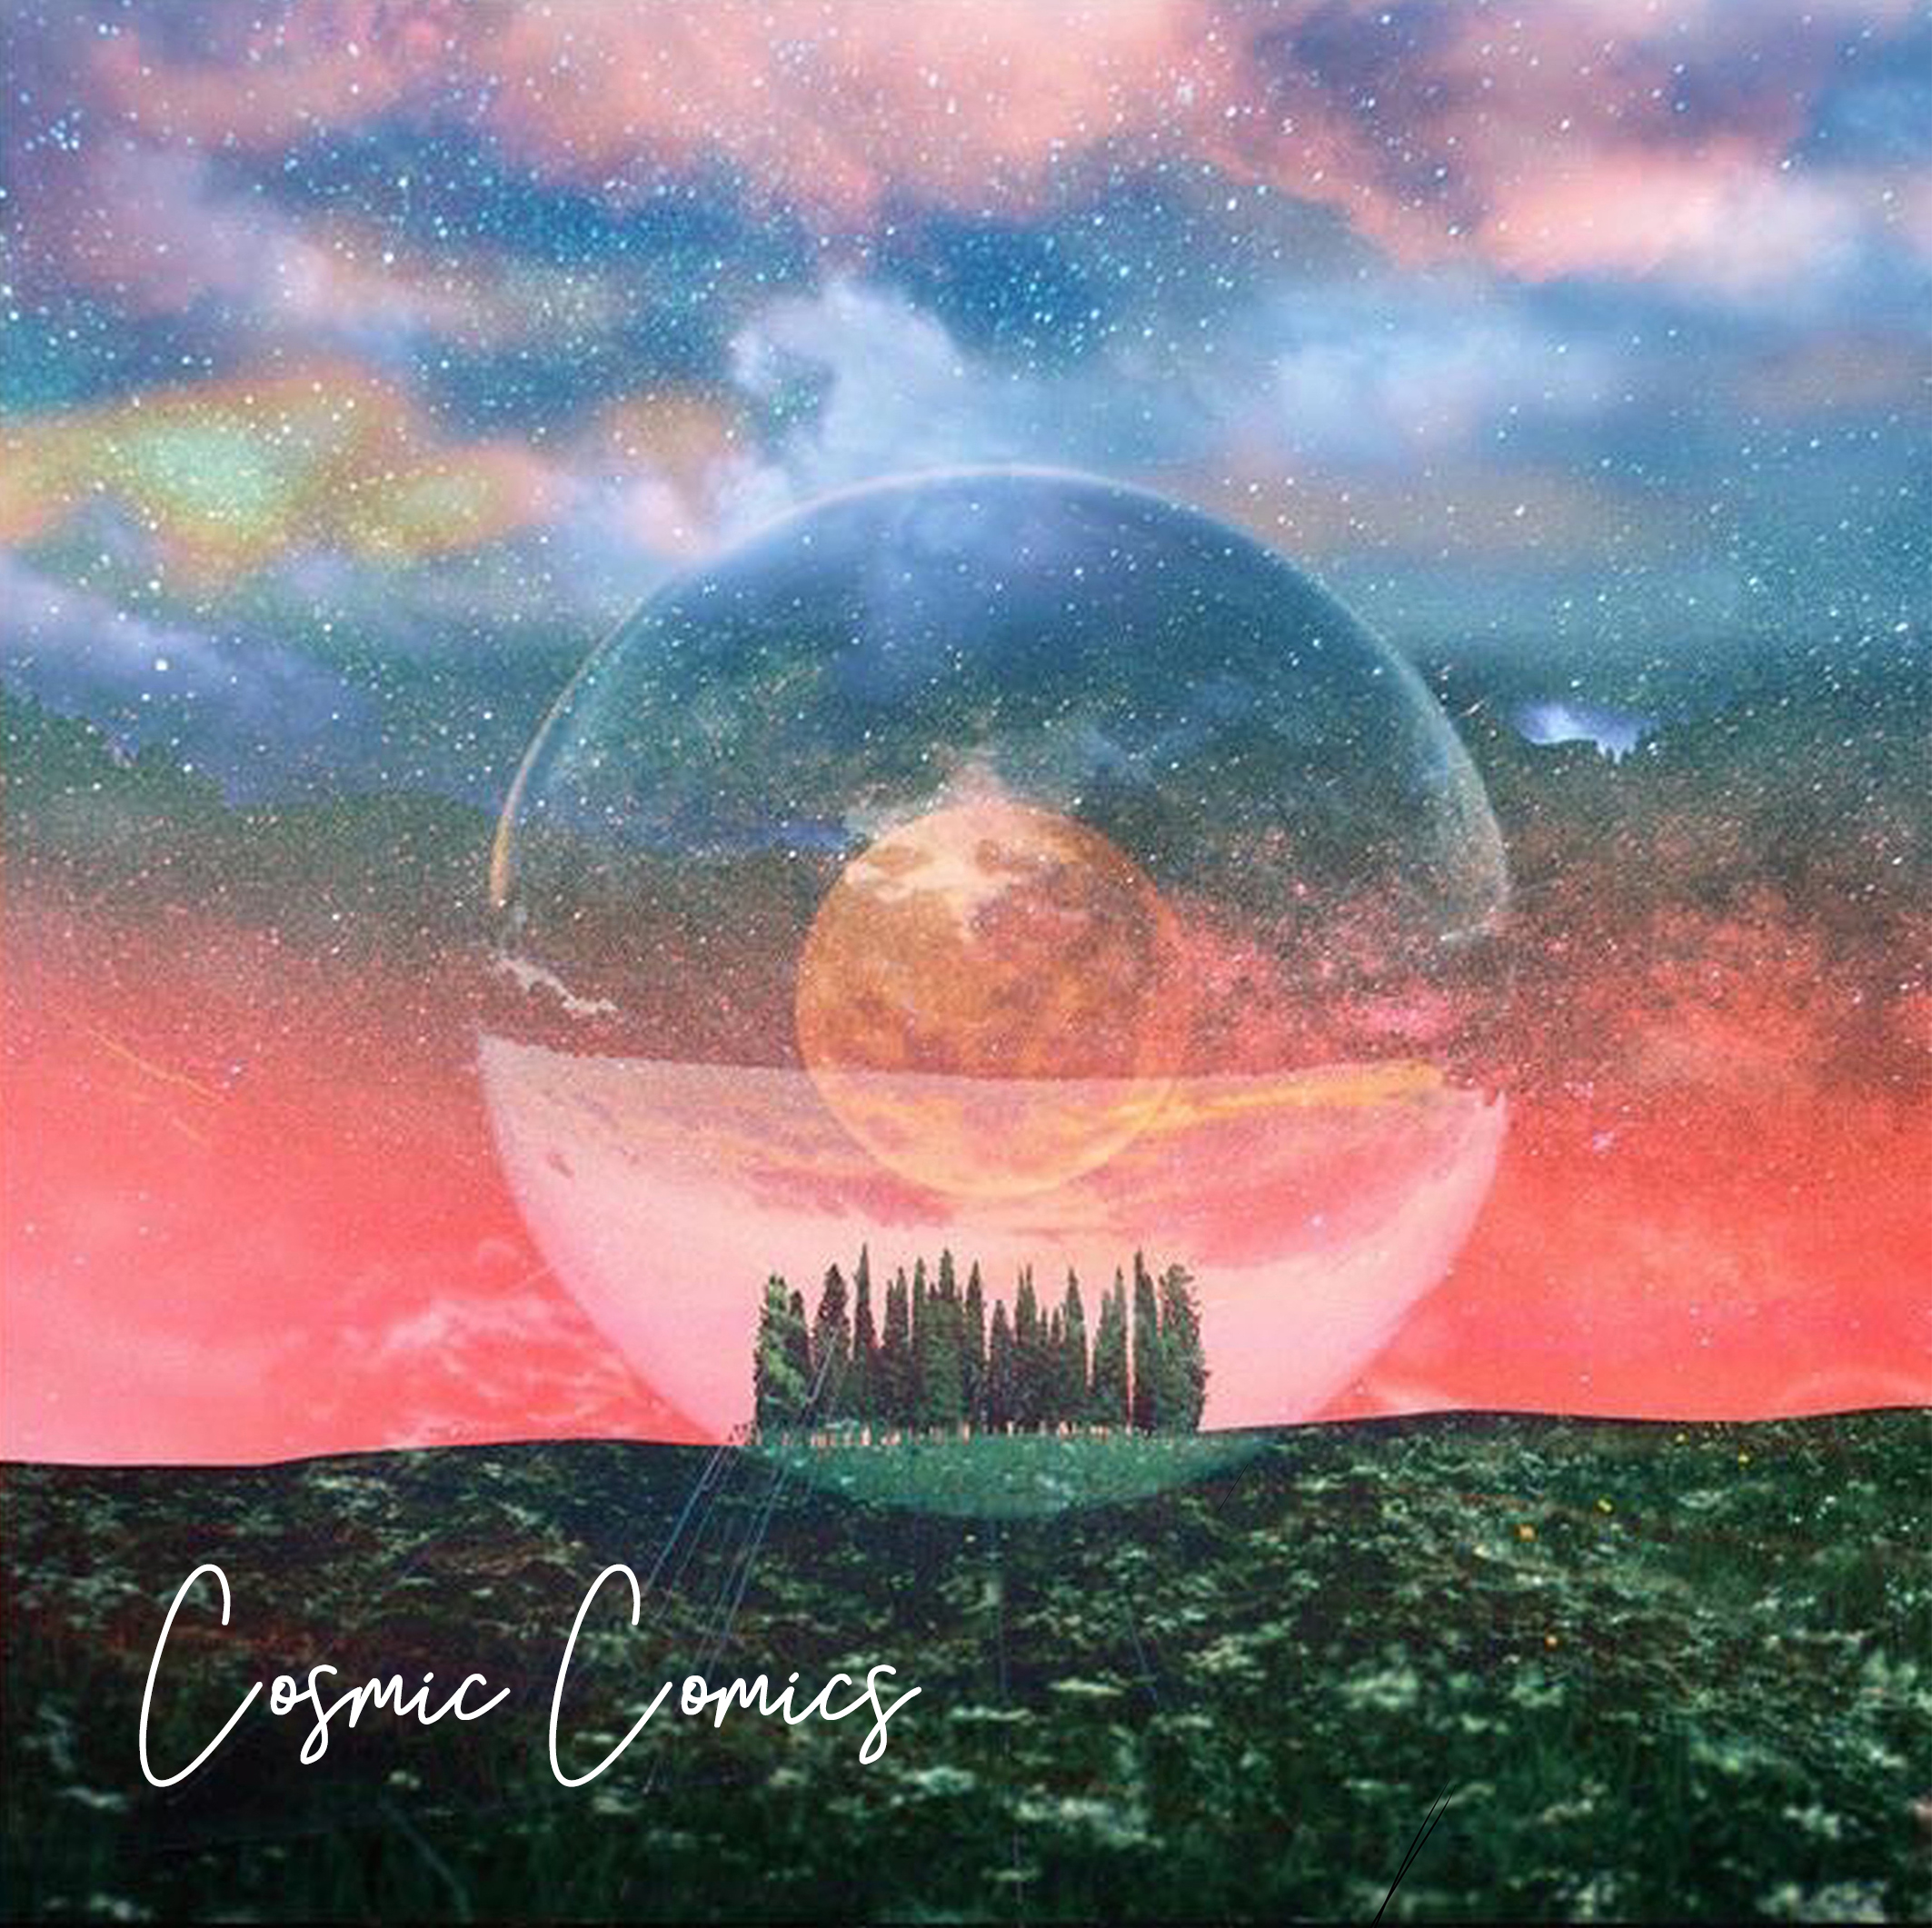 Fwdthinkers-Five5ent-Cosmic-Albumrelease-Funk-New